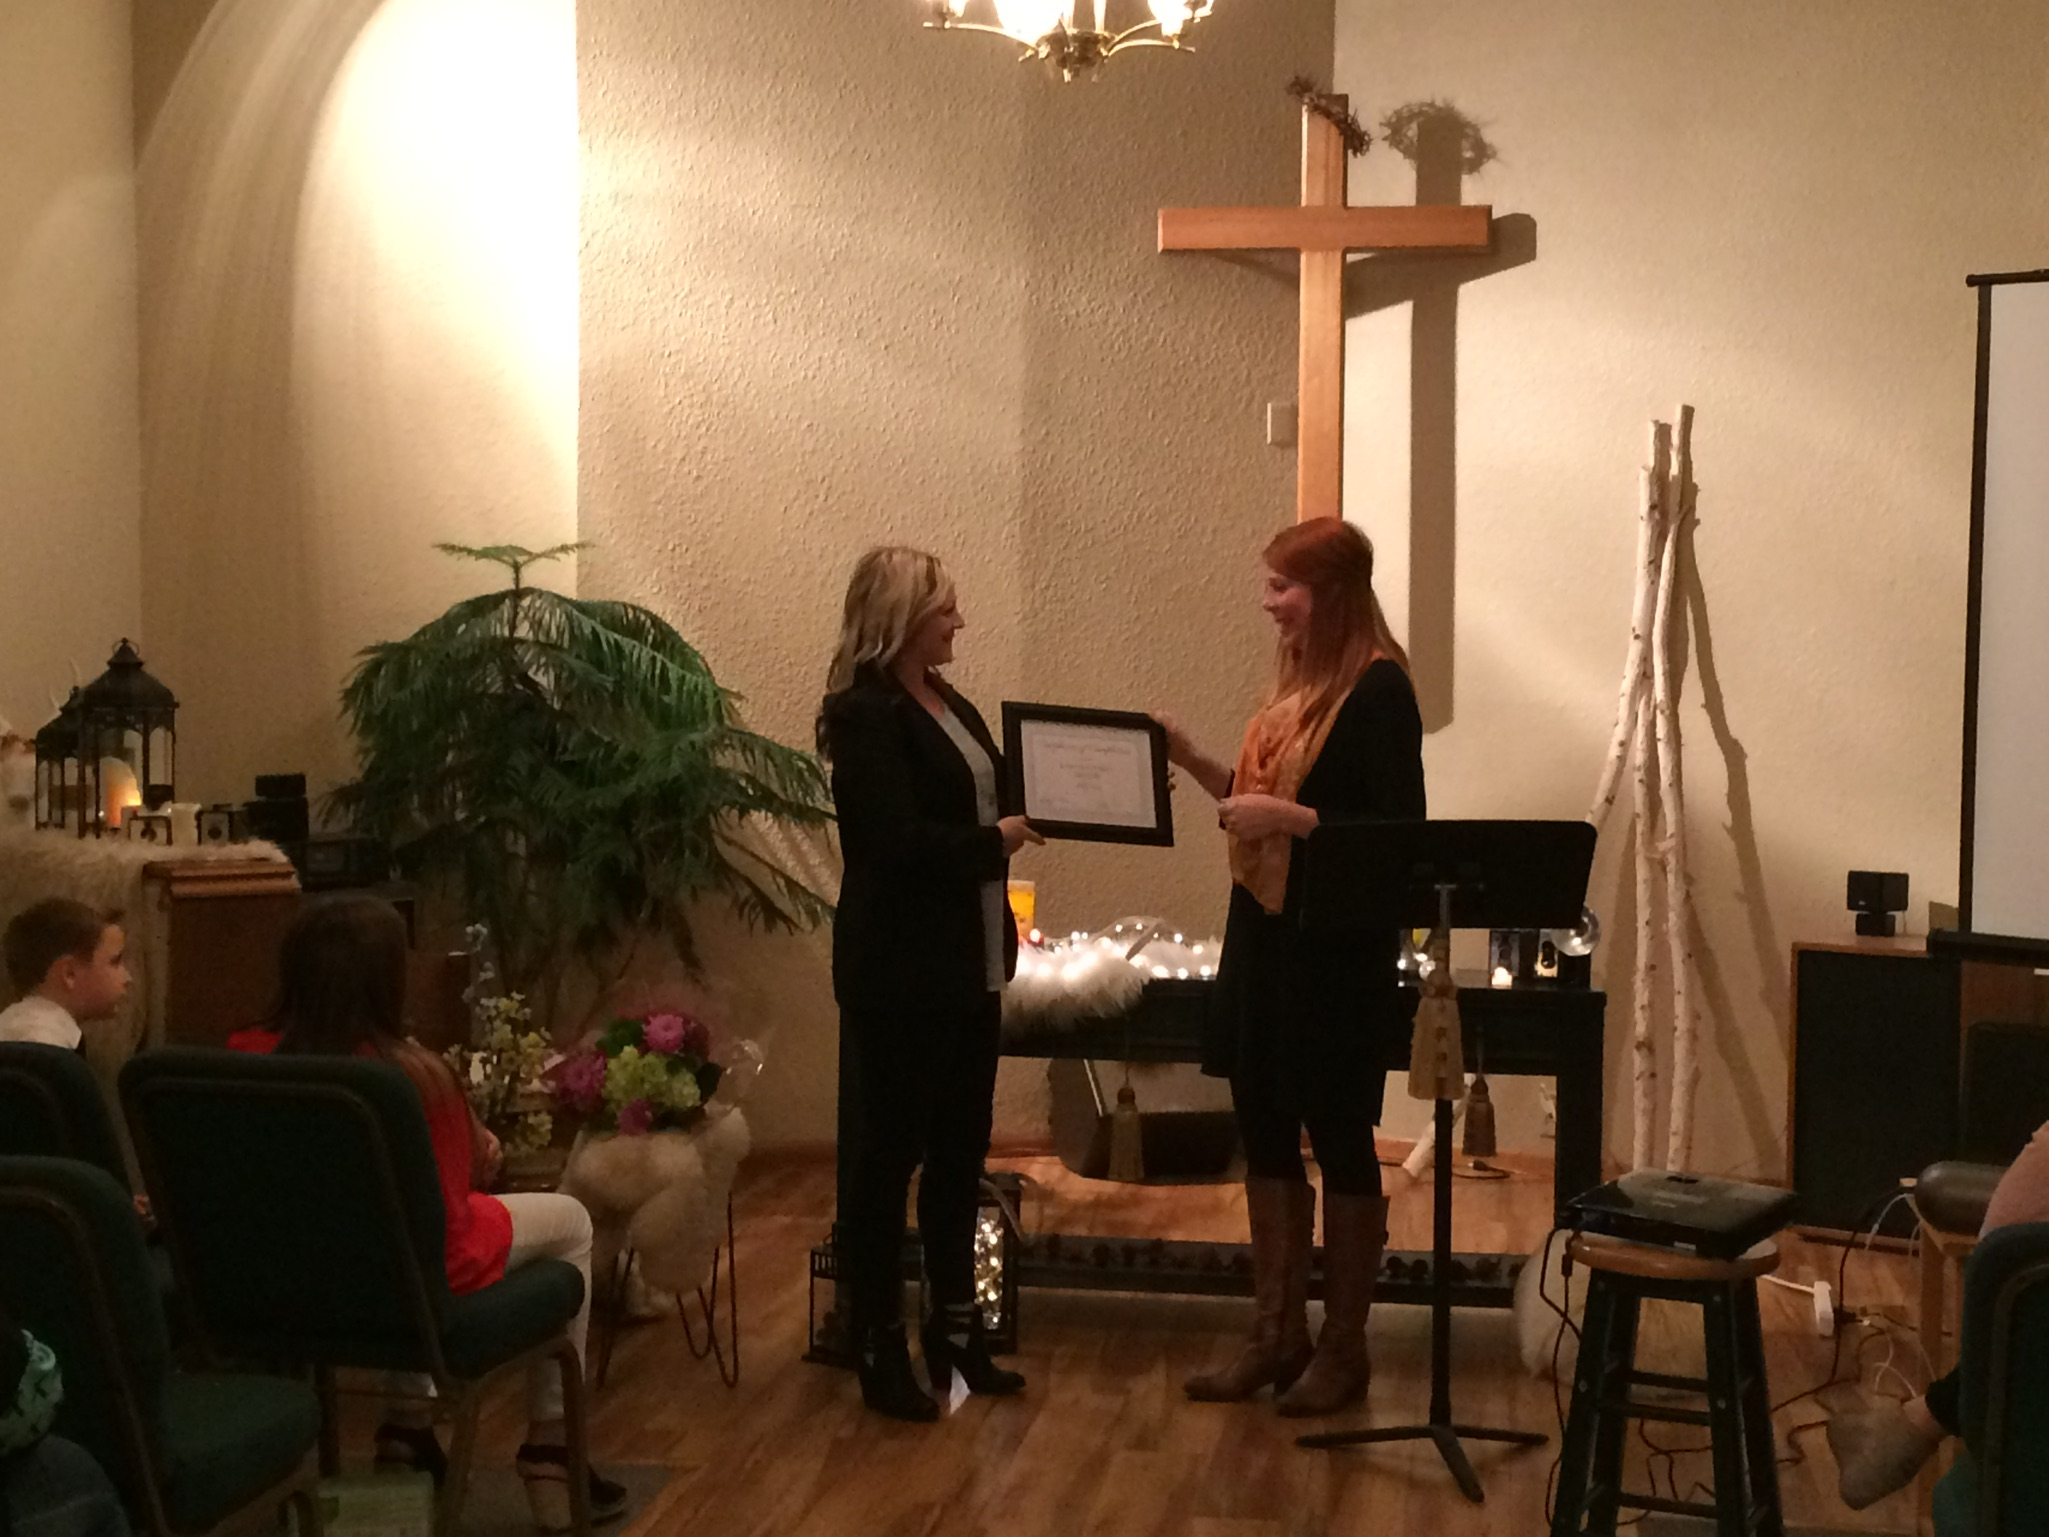 The CAC's most recent graduate of the Healing Home Program receiving her diploma on October 3.